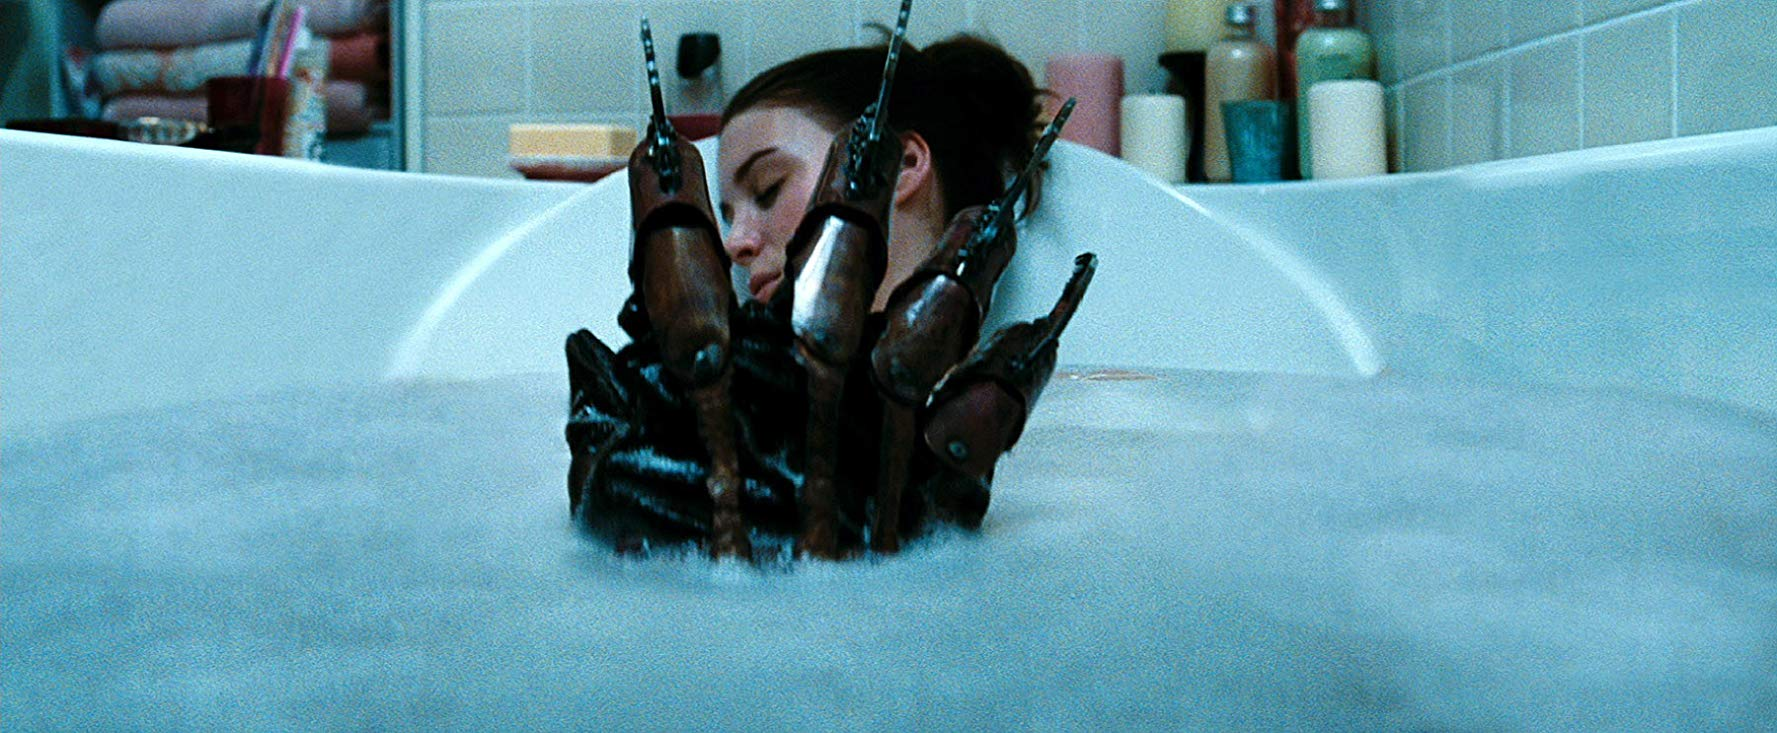 Freddy's claw appears in the bath as Nancy (Rooney Mara) sleeps in A Nightmare on Elm Street (2010)